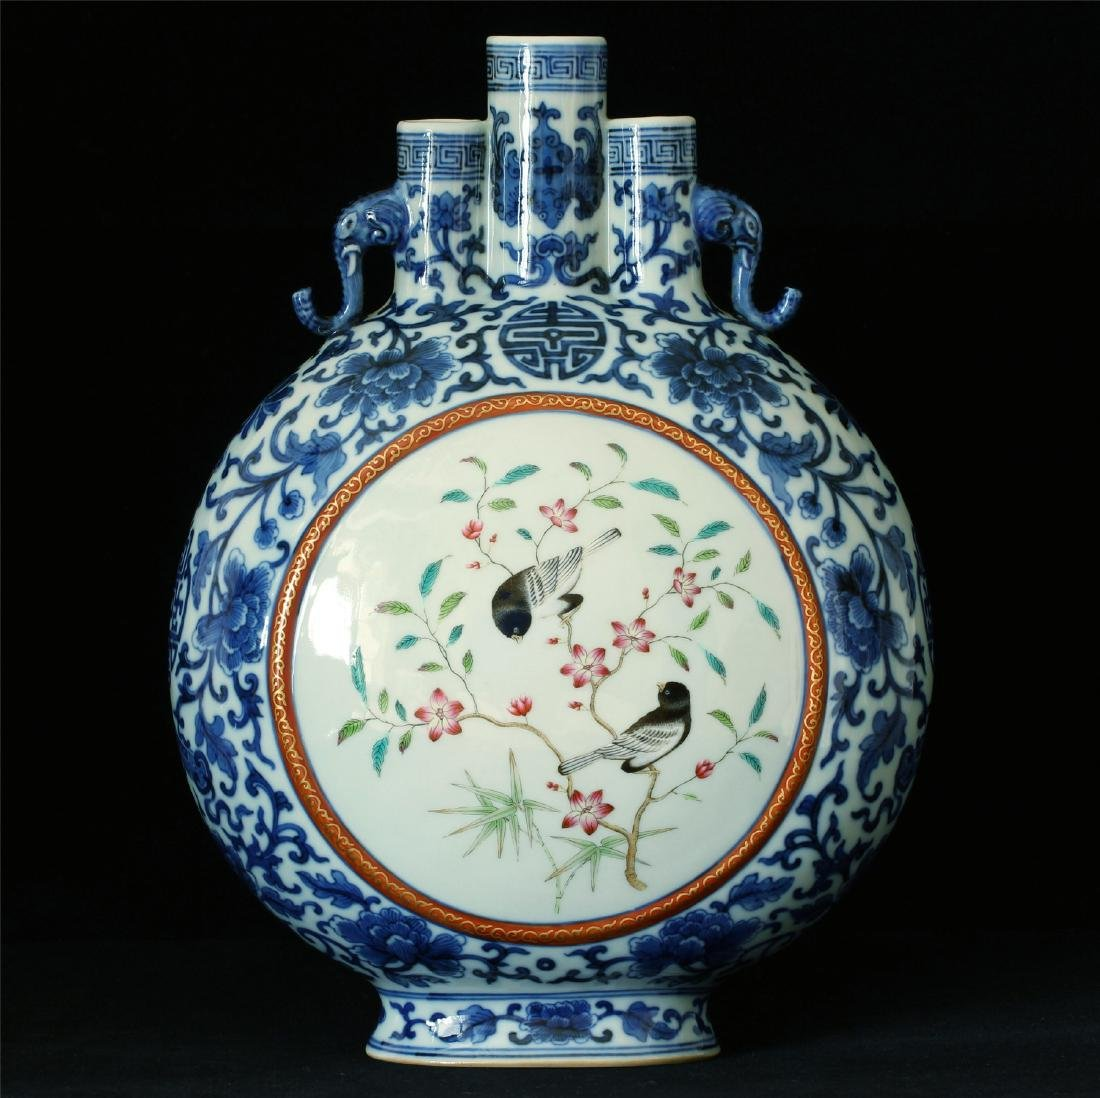 Blue and white & famille rose porcelain vase of Qing